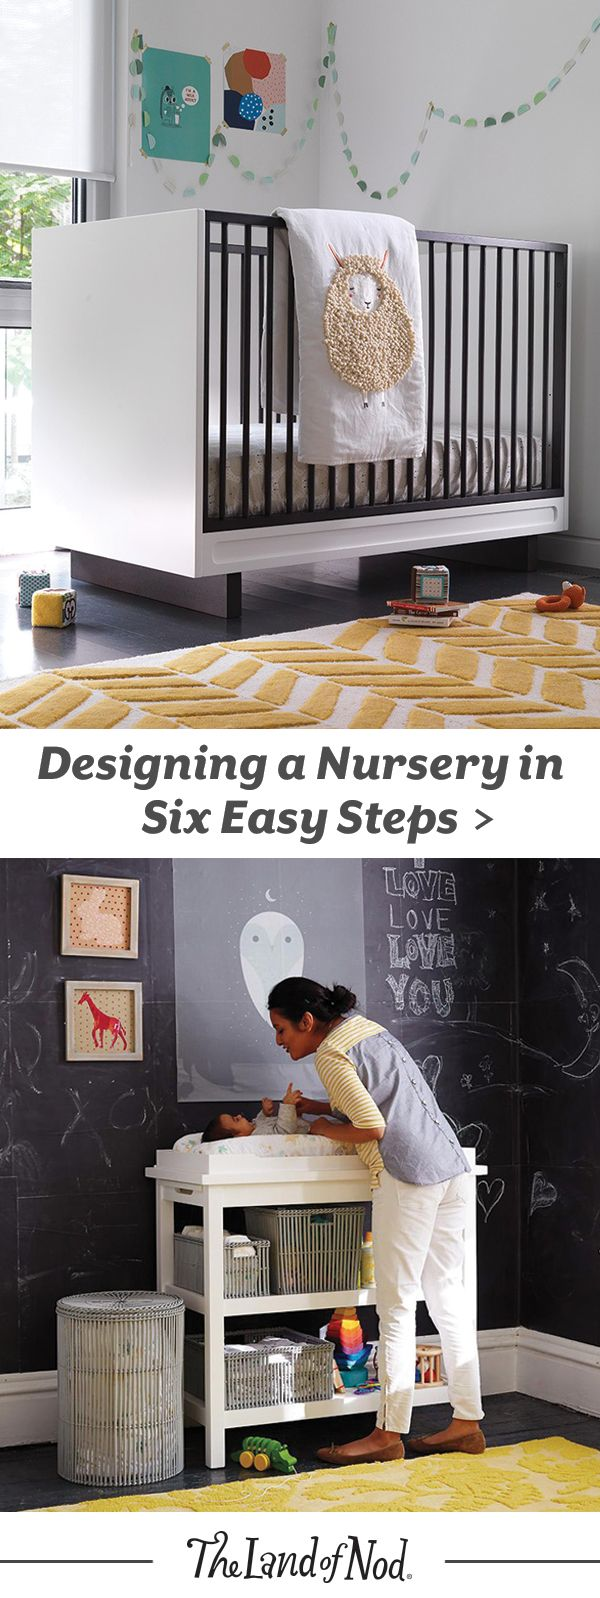 Here's your go-to guide to what you need to know when putting together your new baby's happy place. Because, the most important thing you can do in creating this space is to design a nursery that makes you smile, relax and enjoy. After all, you're going to be spending A LOT of time in the room.